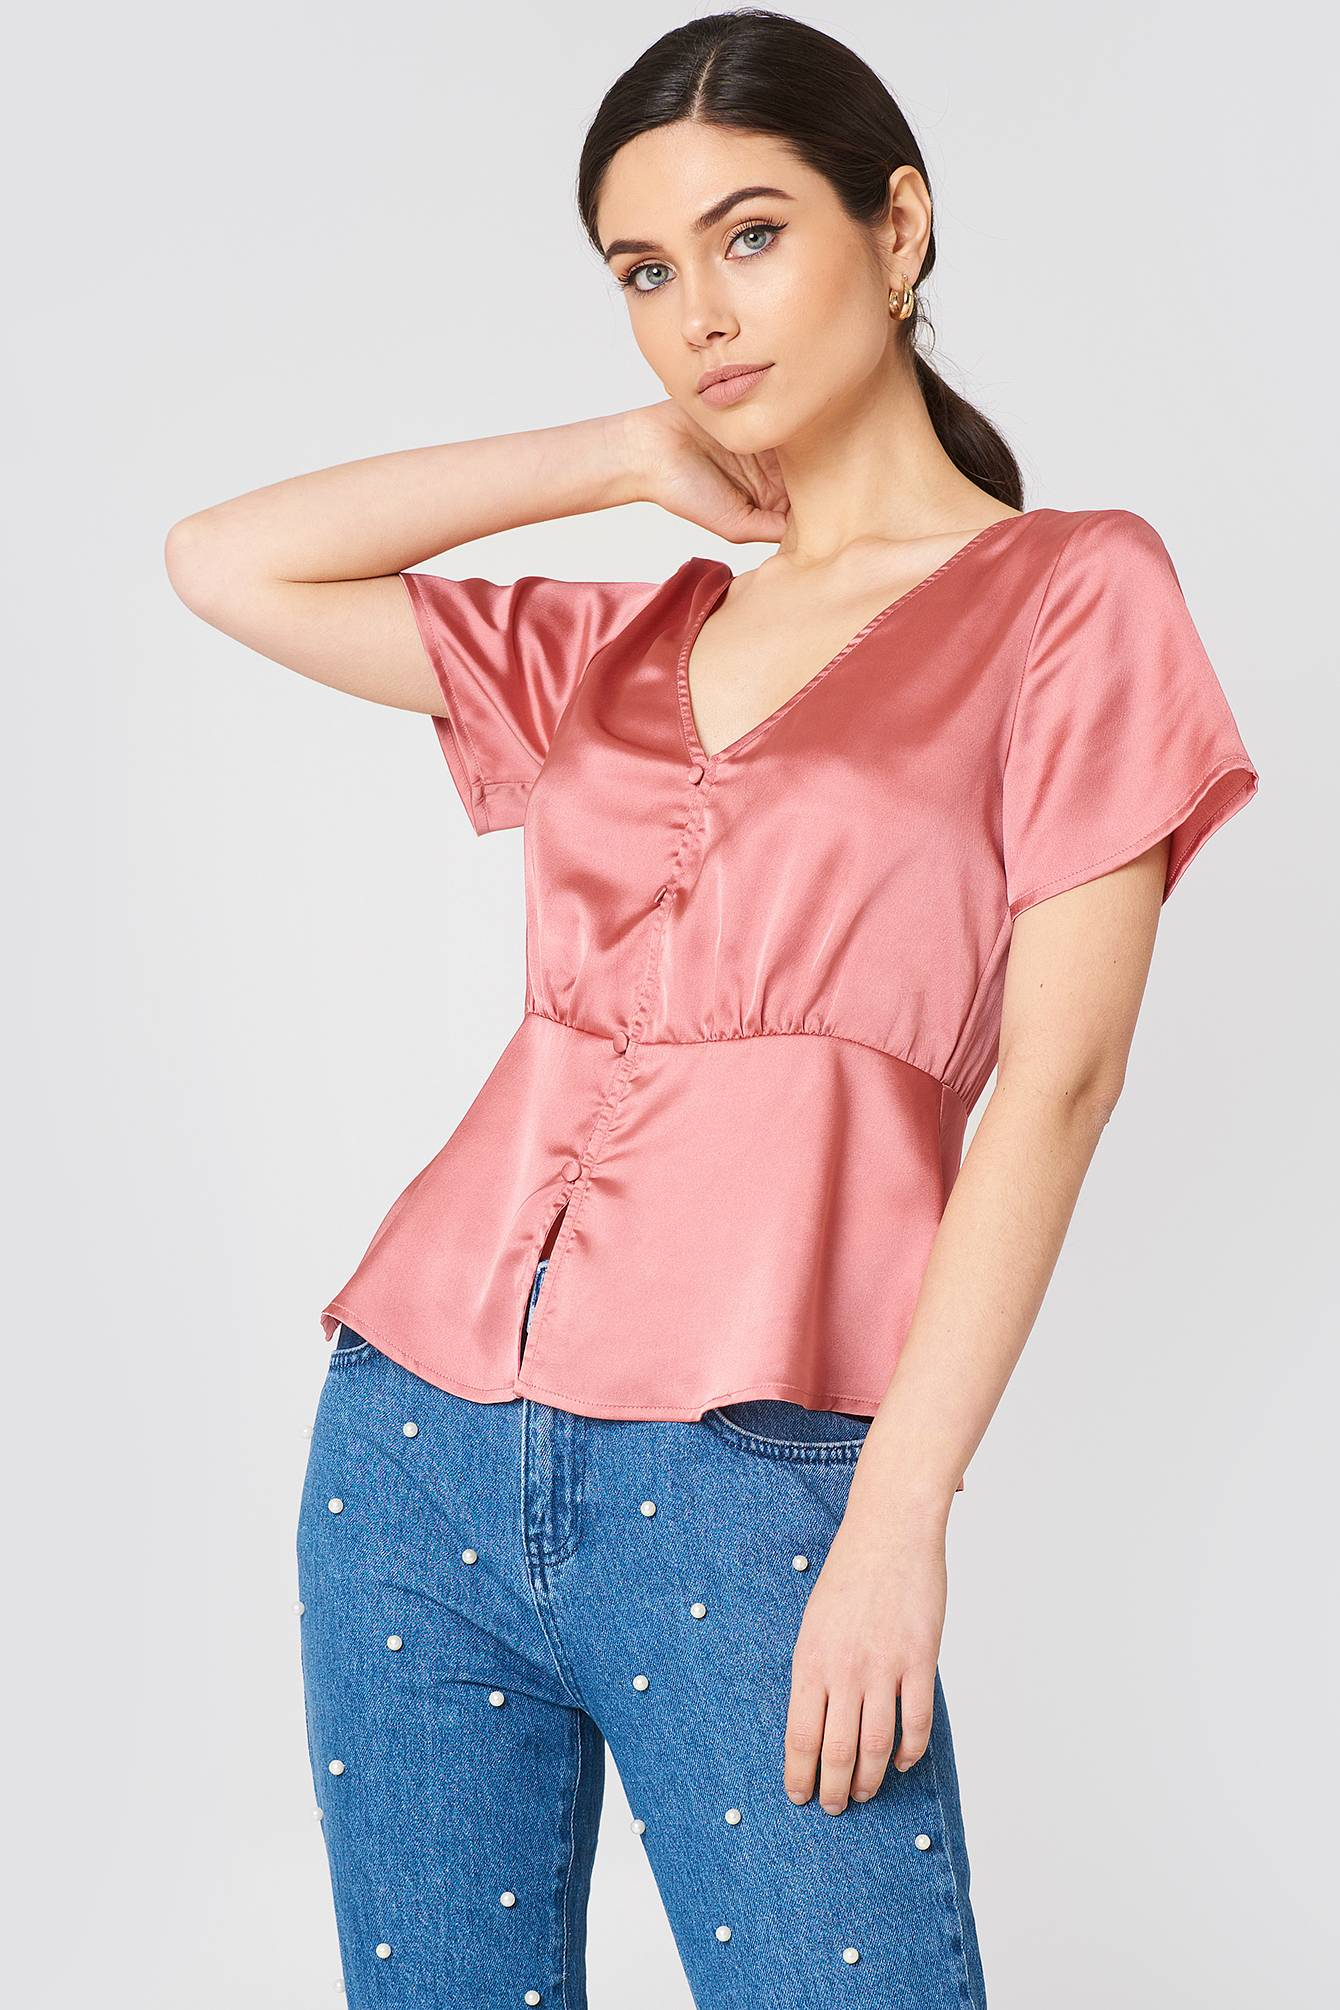 Rut&Circle Ines Front Button Blouse - Pink,Copper